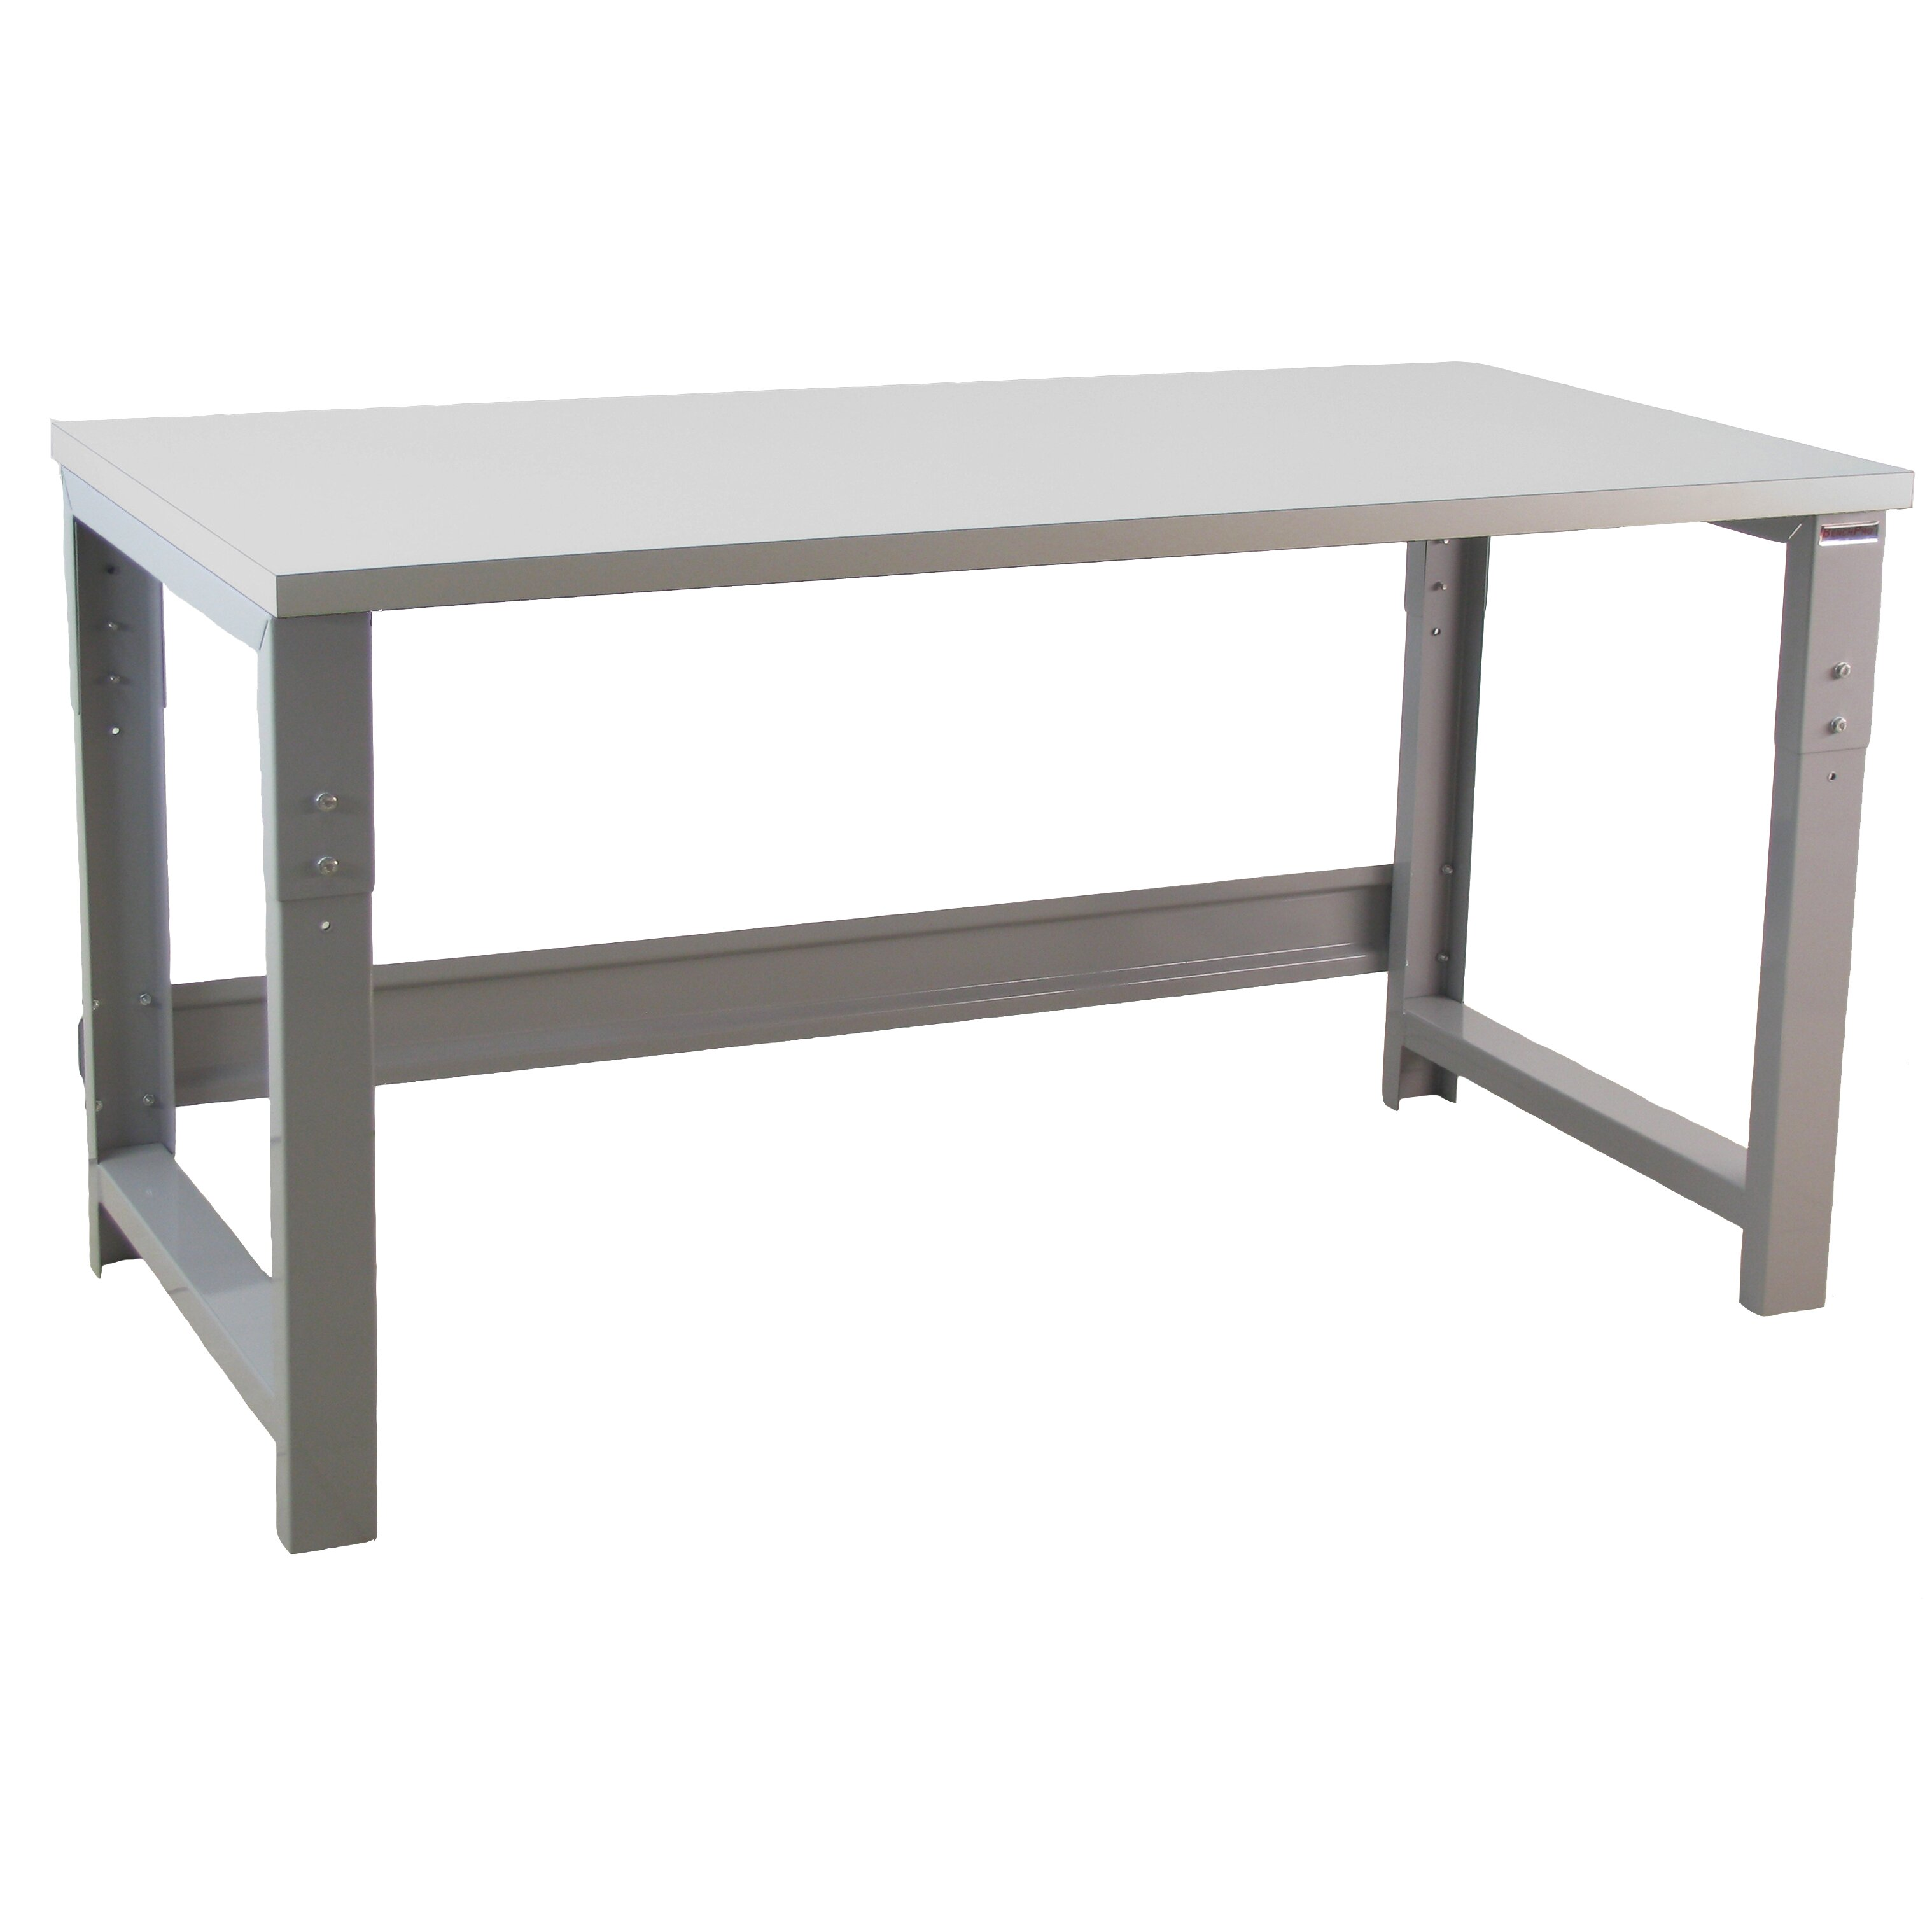 Bench Pro Roosevelt Height Adjustable Formica Laminate Top